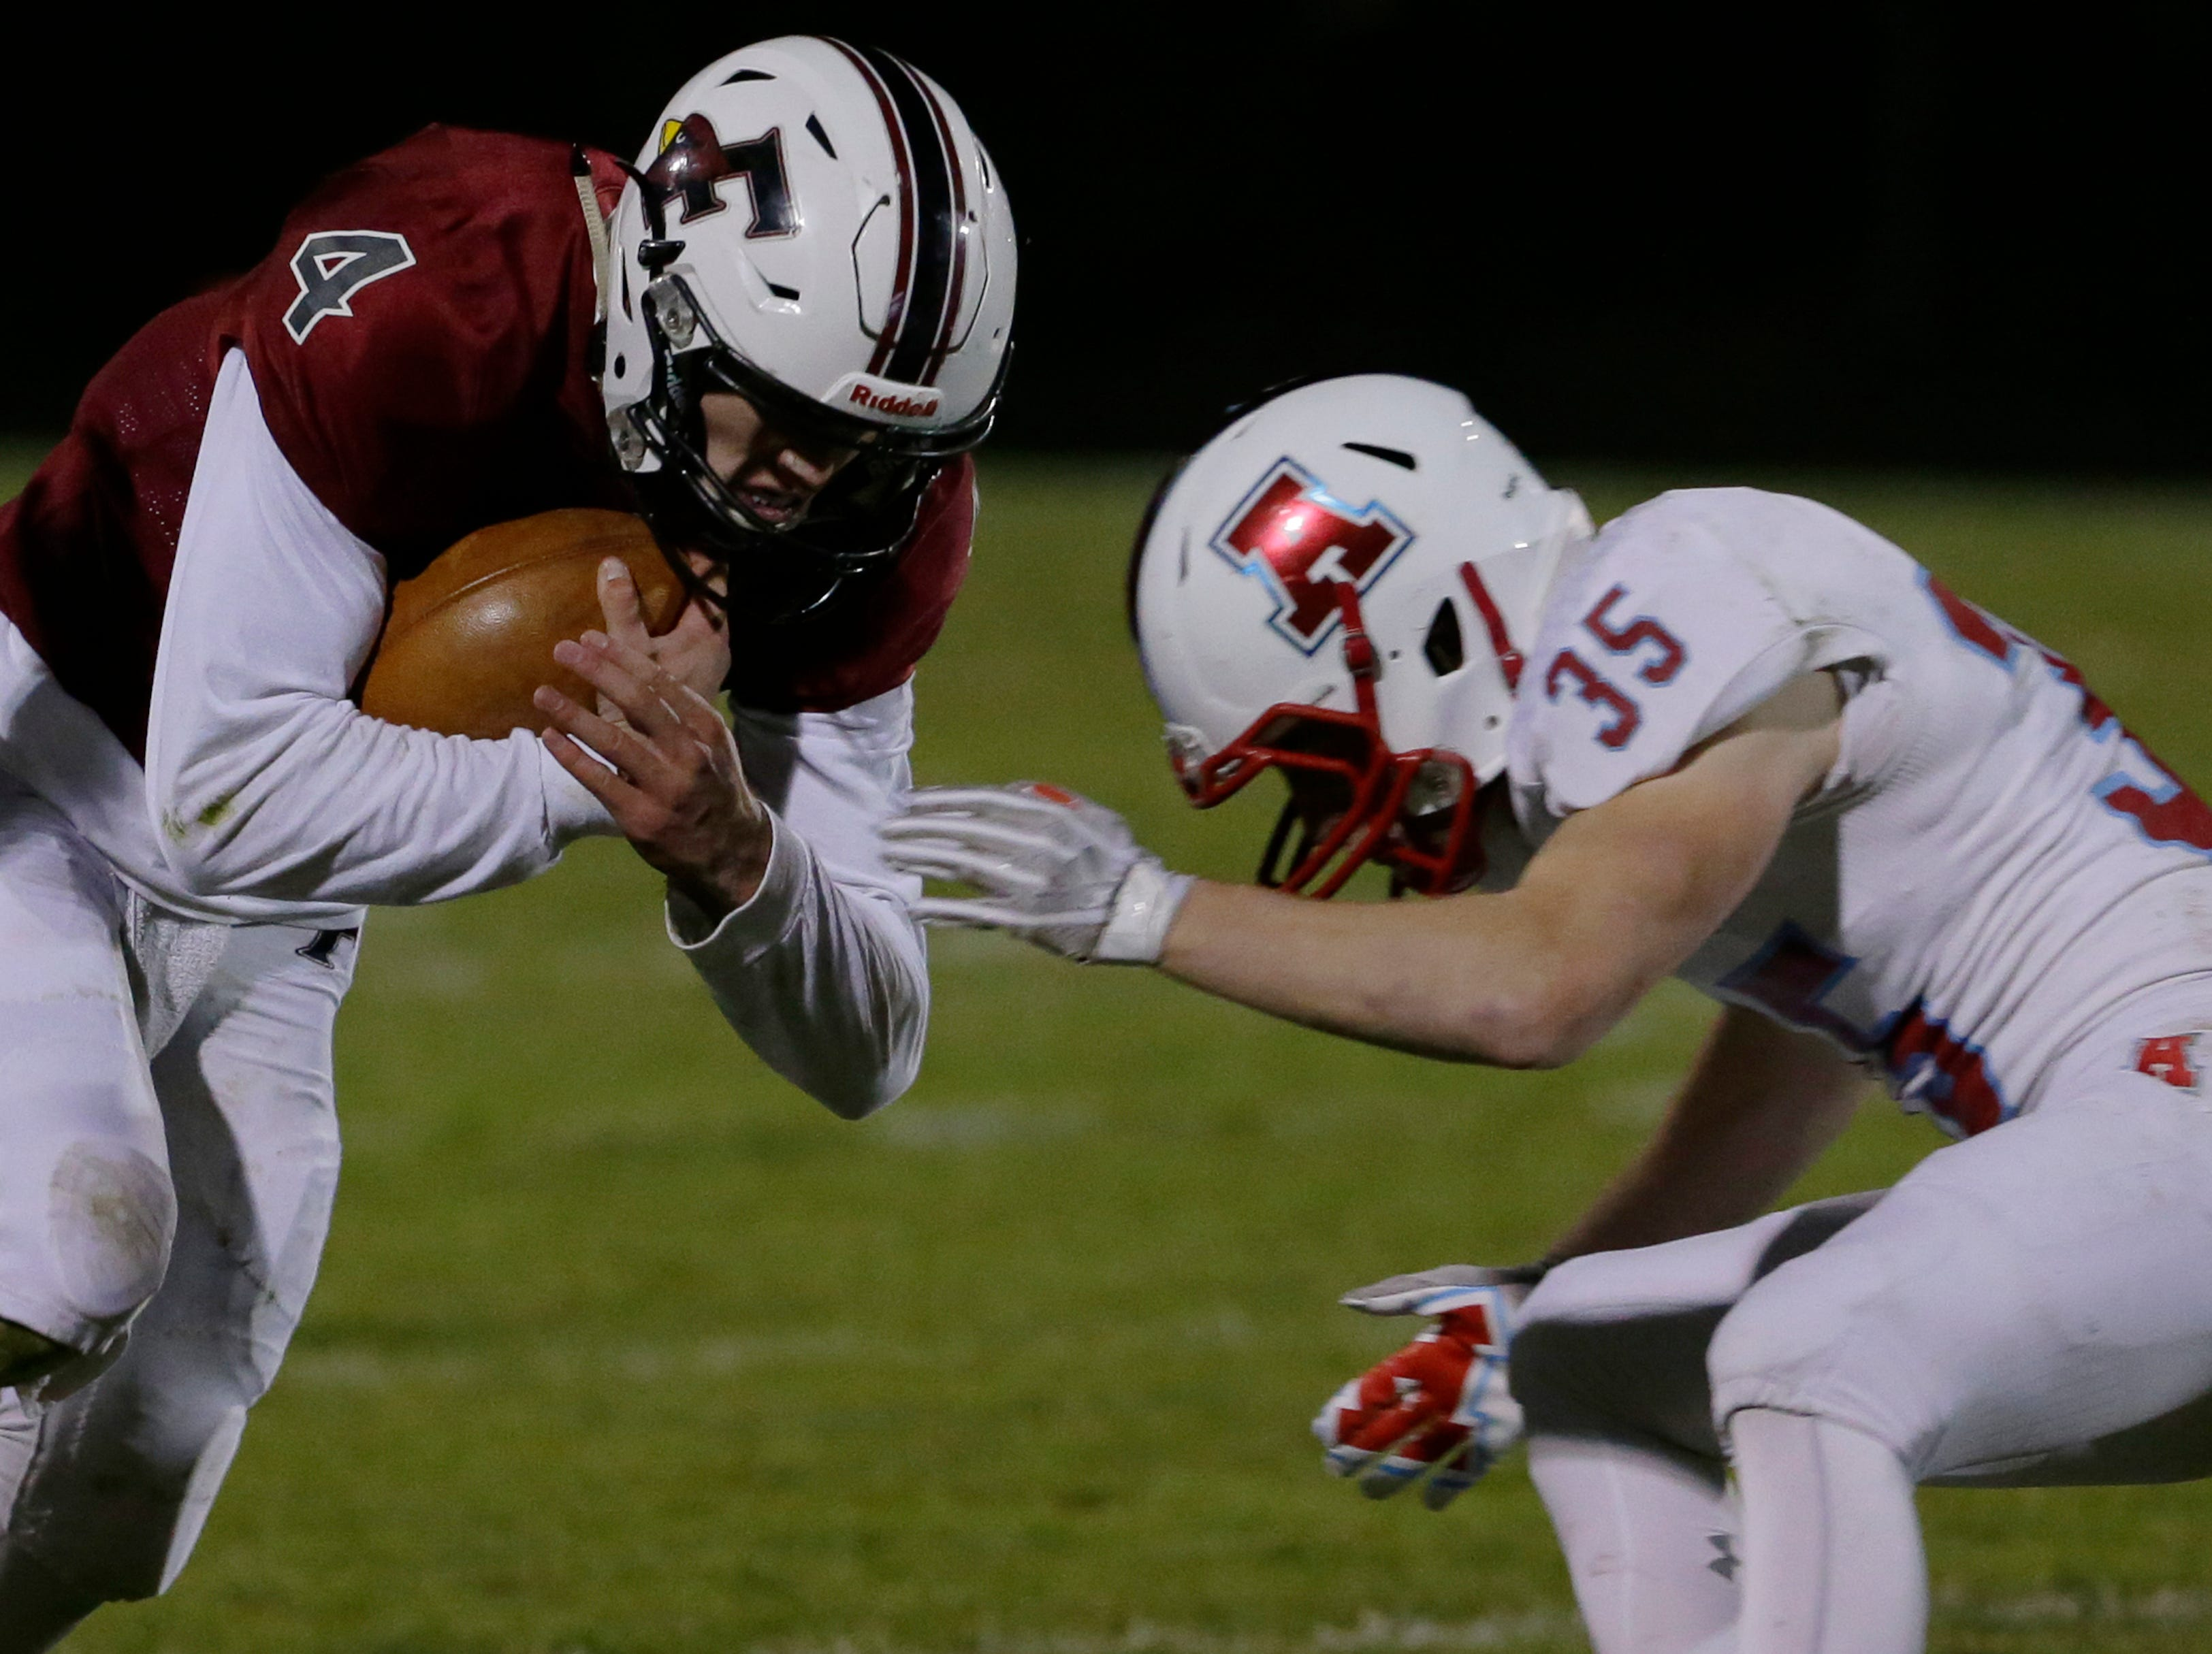 Fond du Lac's Carson Raddatz runs the ball at Arrowhead's Colton Borkowicz during the game.  Fond du Lac Cardinals played Arrowhead Warhawks in WIAA football playoff sectionals, Friday, Oct. 26, 2018, at Fruth Field in Fond du Lac.    Fond du Lac won 28 - 22.Joe Sienkiewicz/USA Today NETWORK-Wisconsin